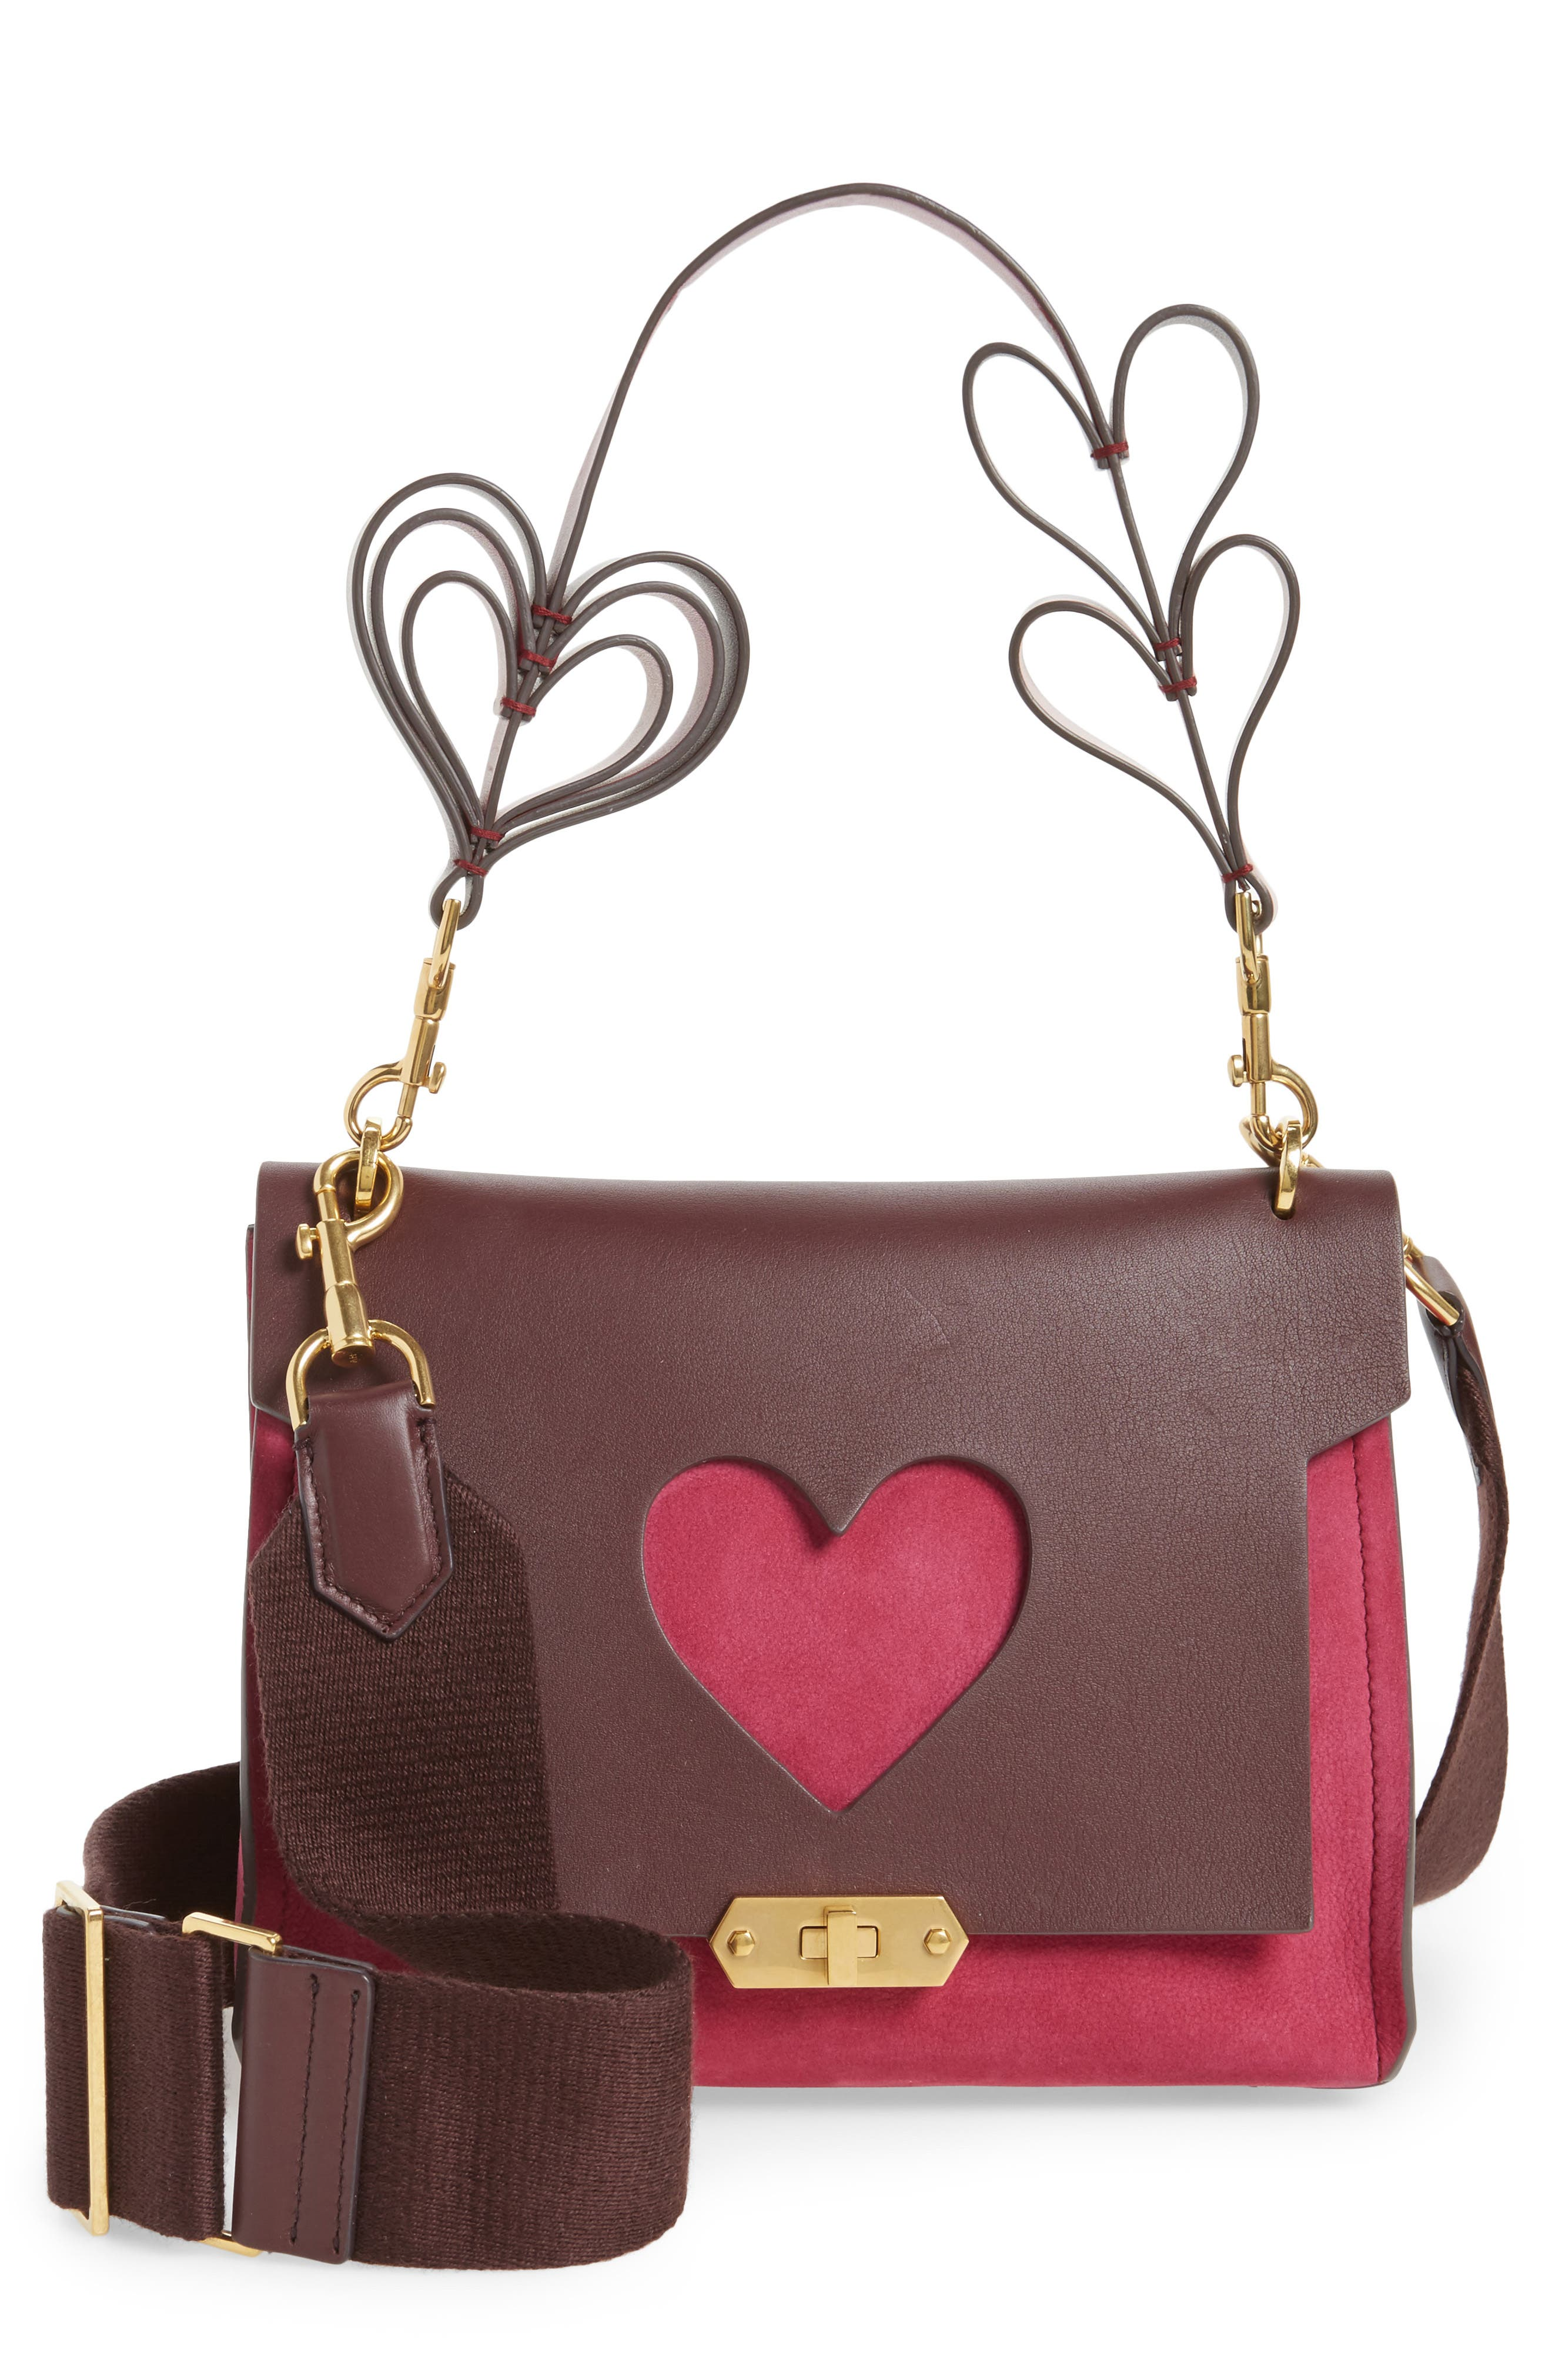 Extra Small Bathhurst Heart Leather Shoulder Bag,                             Main thumbnail 1, color,                             650